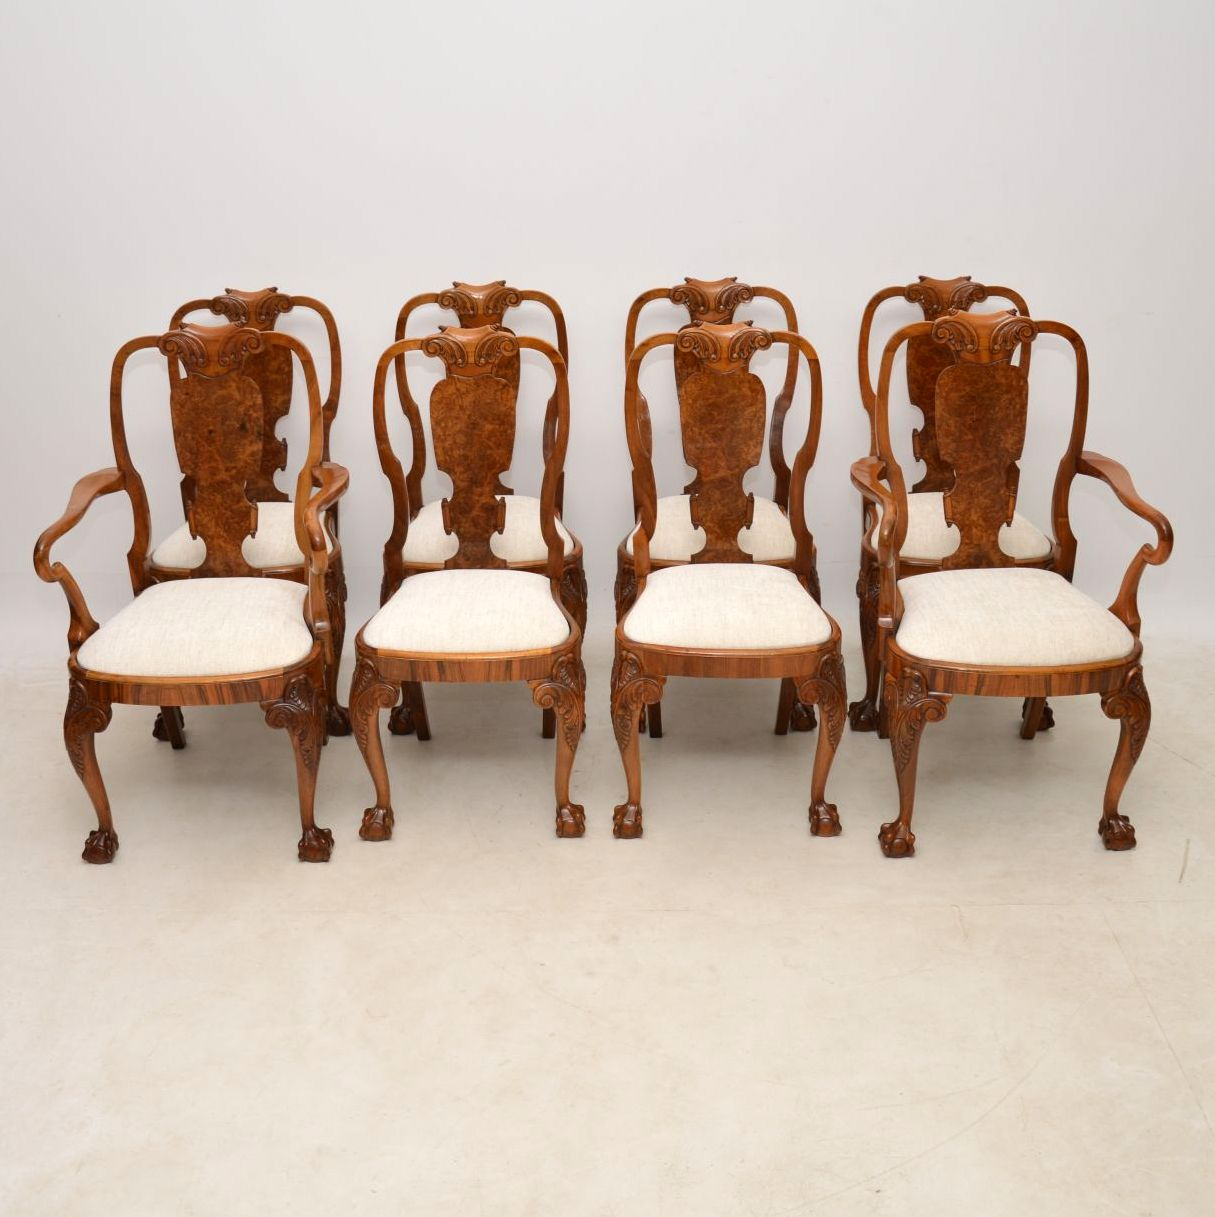 Set of 8 Antique Walnut Queen Anne Dining Chairs